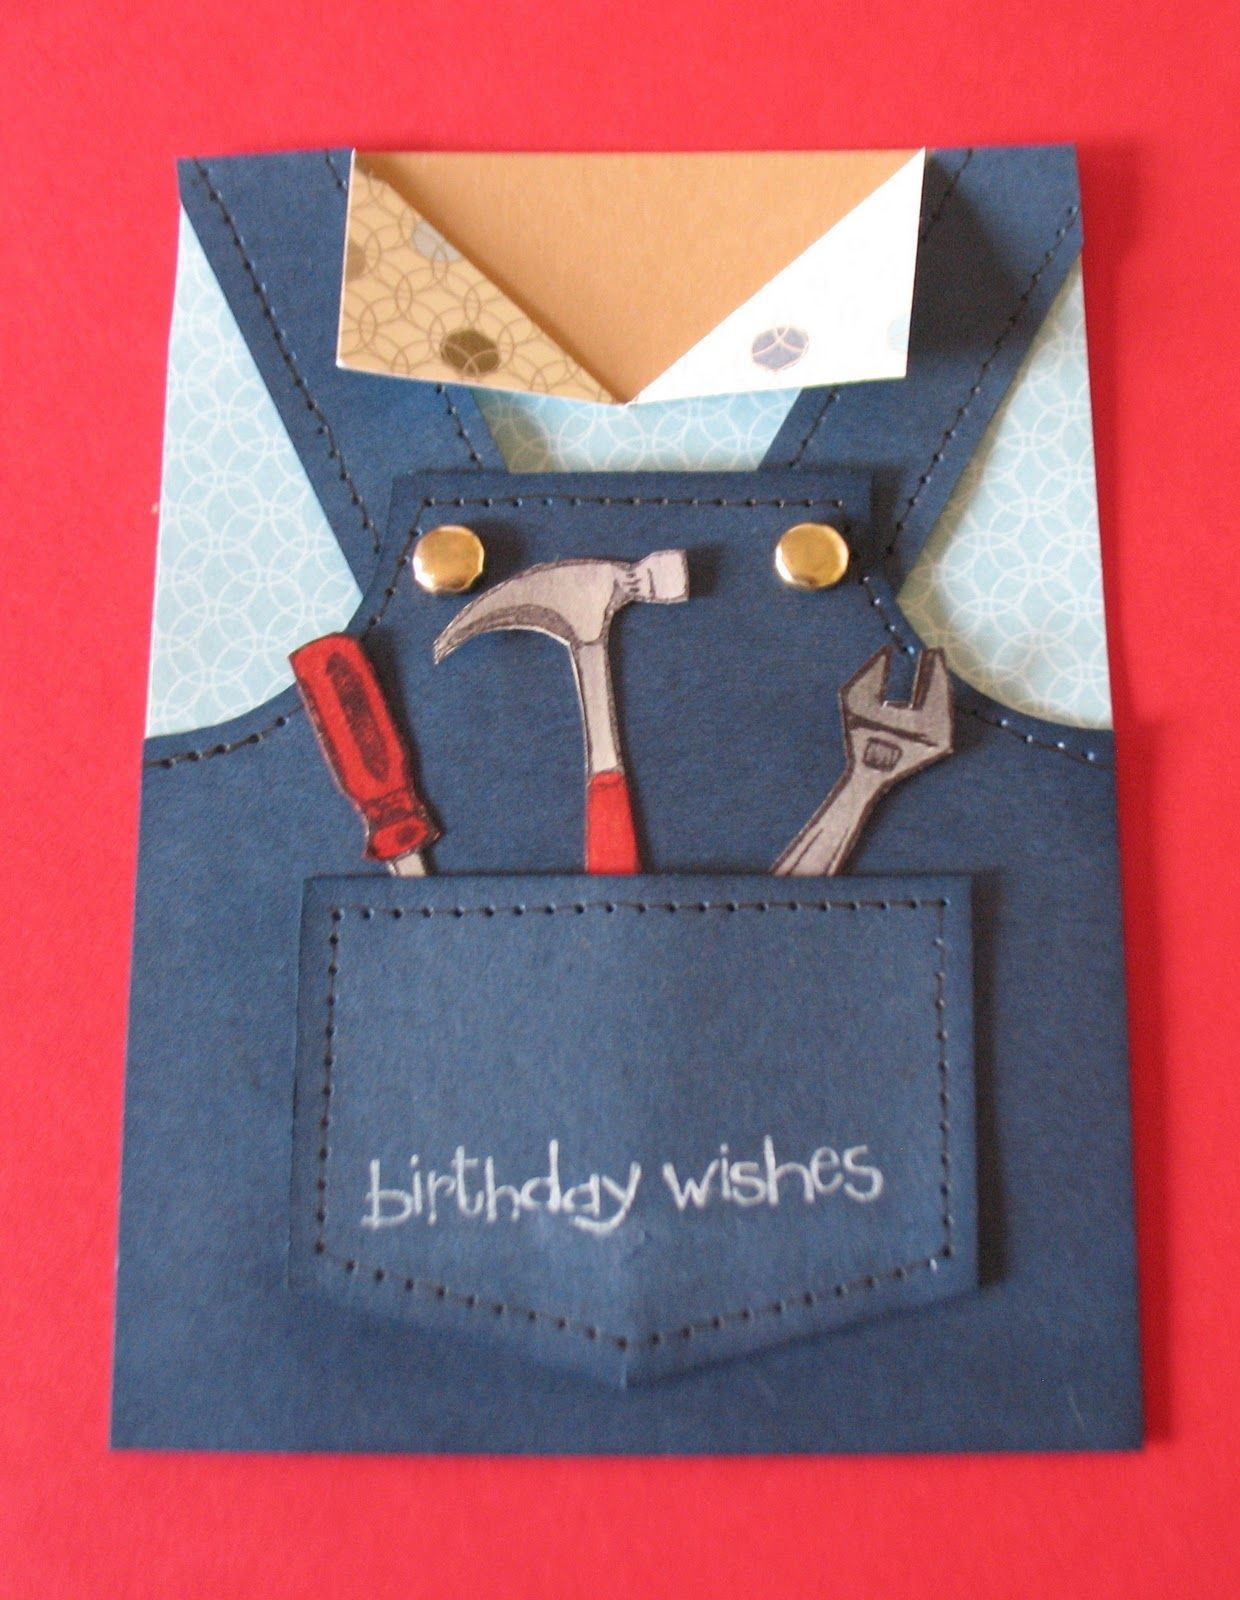 Tool man birthday card tutorial debzhouse stamping card debzhouse stampin up ideas news special offers tool man card would make a nice fathers day card too birthday card bookmarktalkfo Image collections